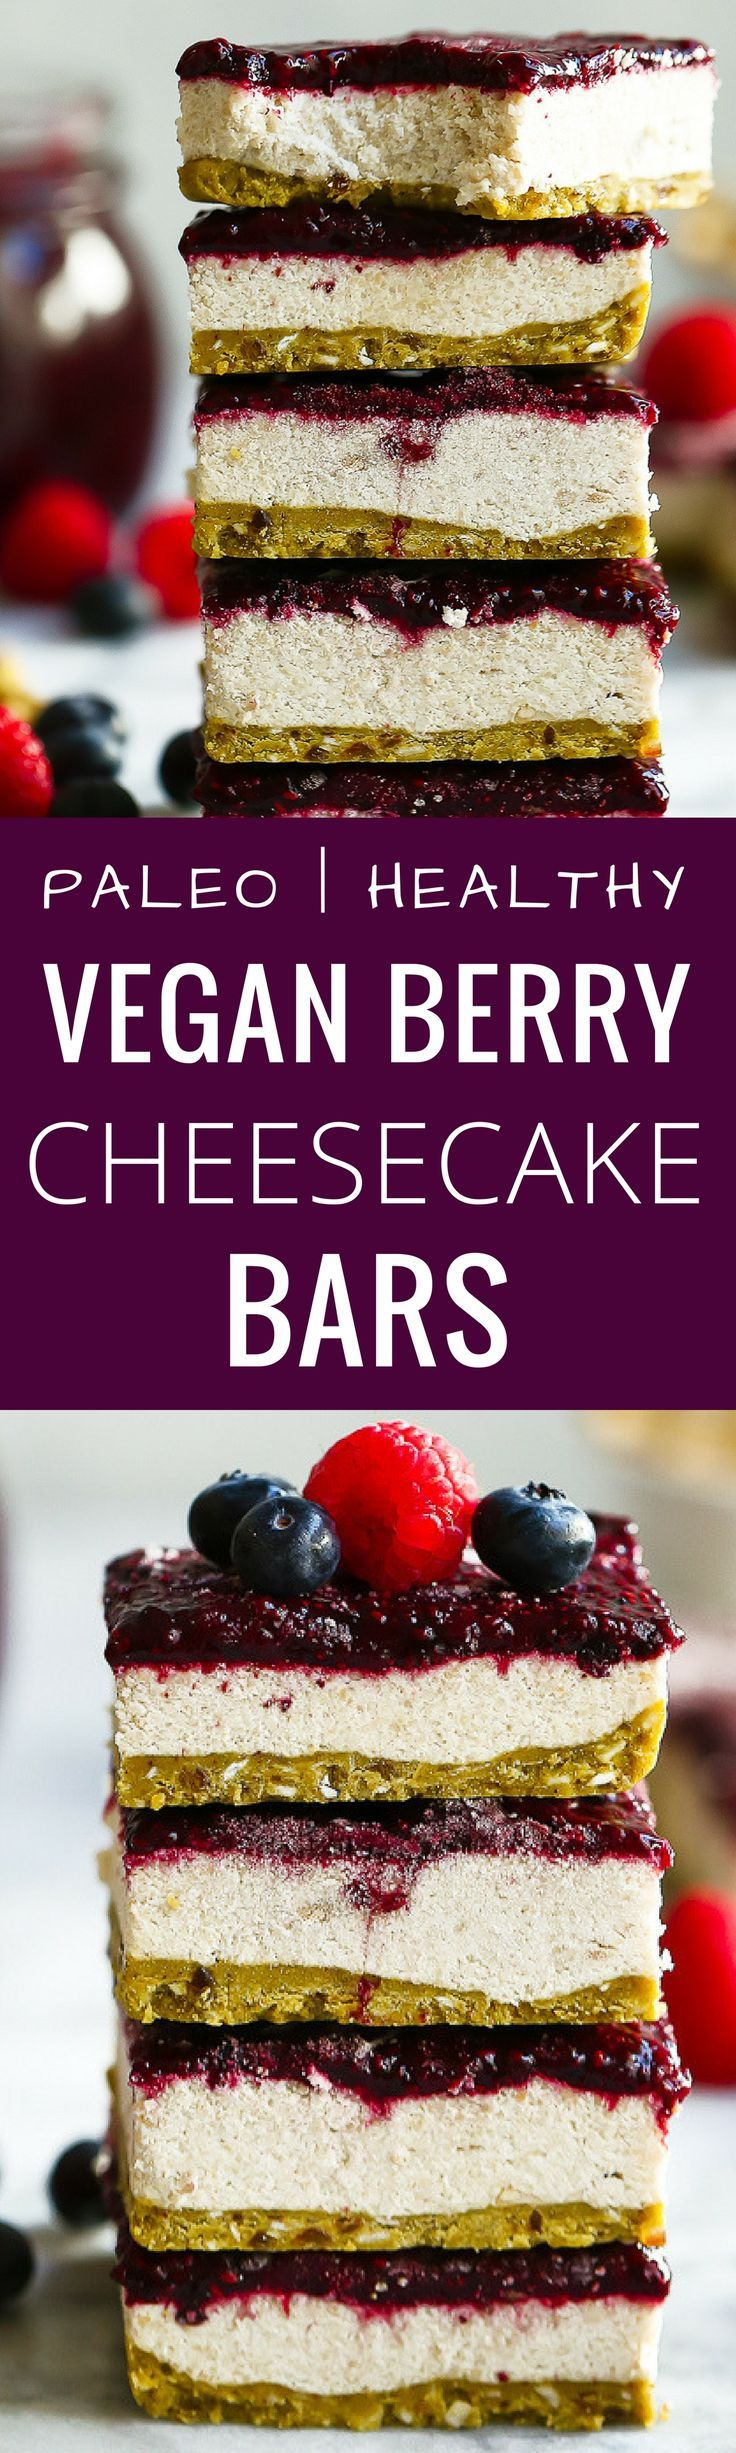 Paleo Vegan Berry Cheesecake Bars. These cheesecake bars are easy to make, taste delicious and are gluten free, grain free, dairy free and sugar free! Low carb cheesecake bars. No bake cheesecake bars.